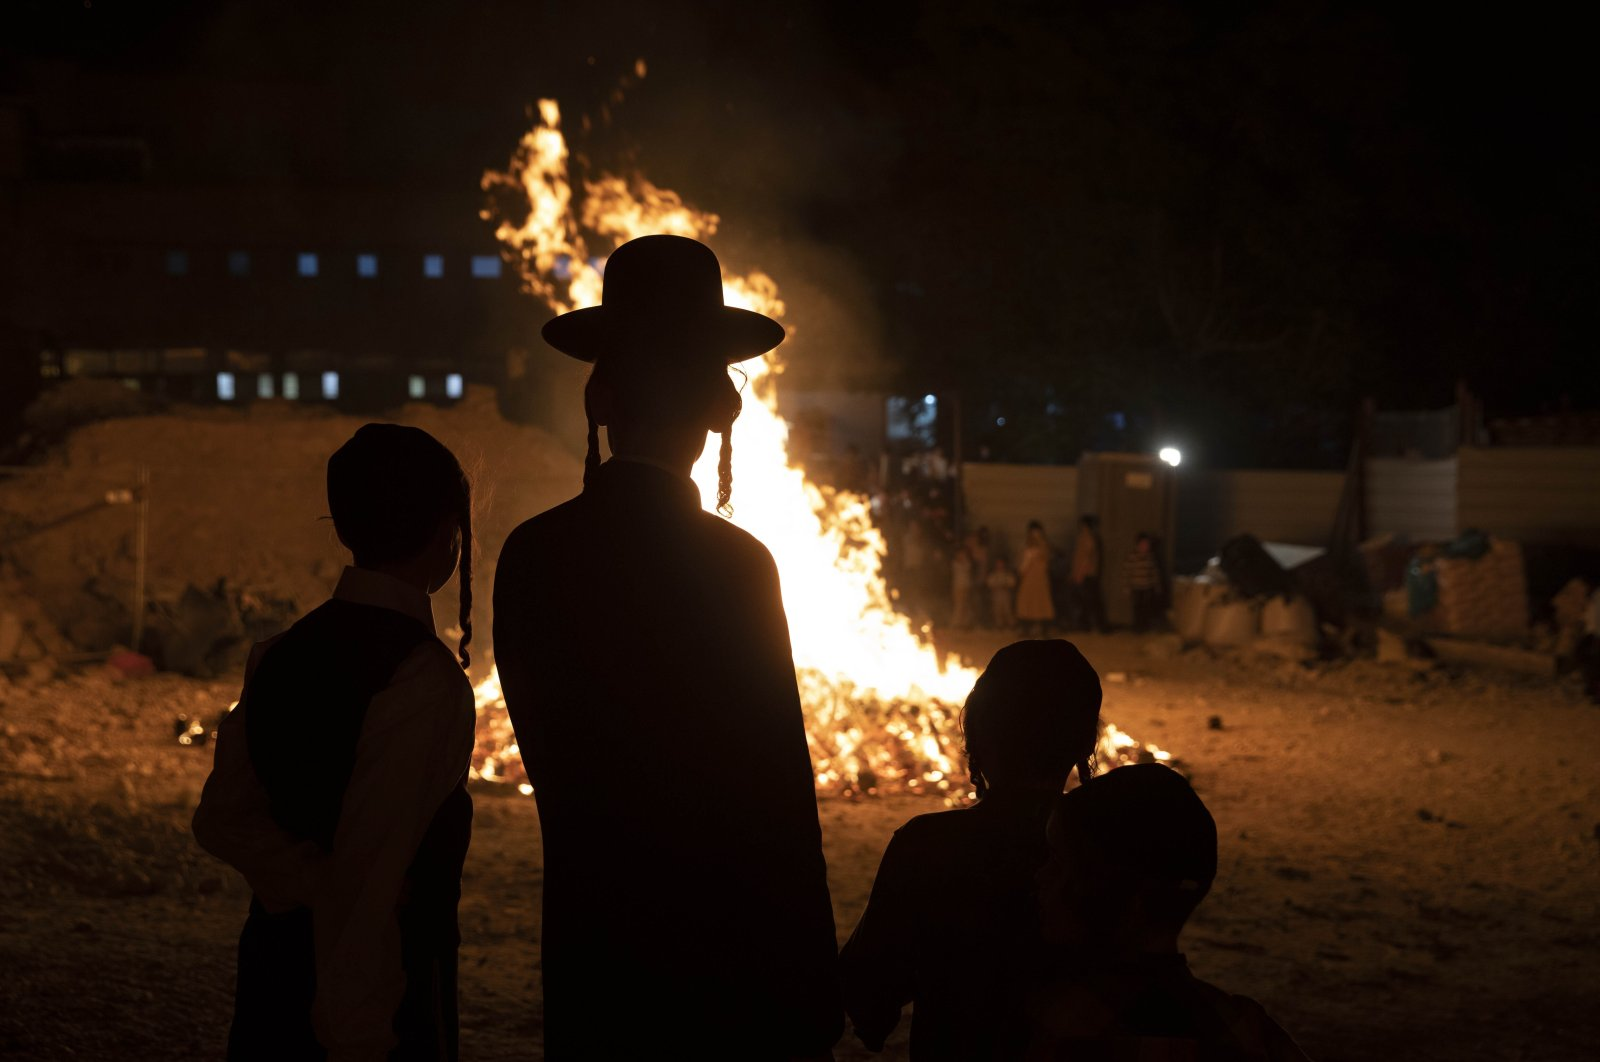 Ultra-Orthodox Jewish youths stand next to a bonfire in western Jerusalem, Israel, April 29, 2021. (AP Photo)